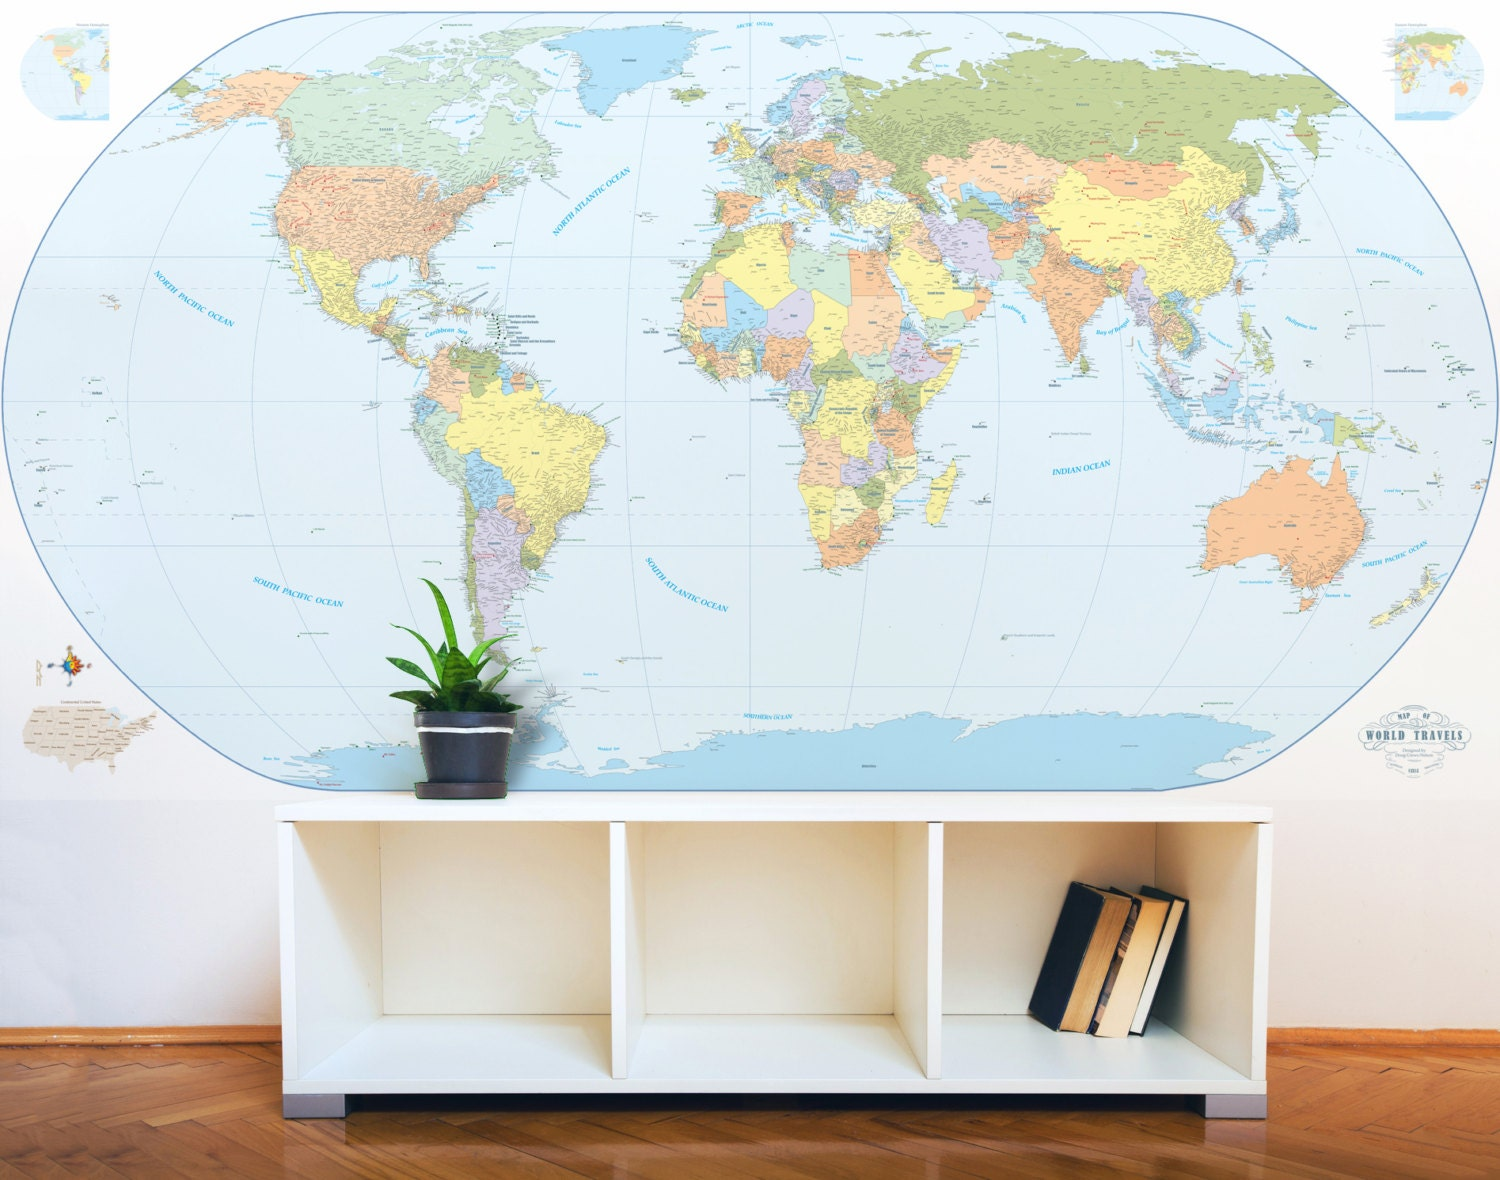 Giant world map mural stylish and educational world map wall art giant world map mural stylish and educational world map wall art world map decal 48h x 90w with cities gumiabroncs